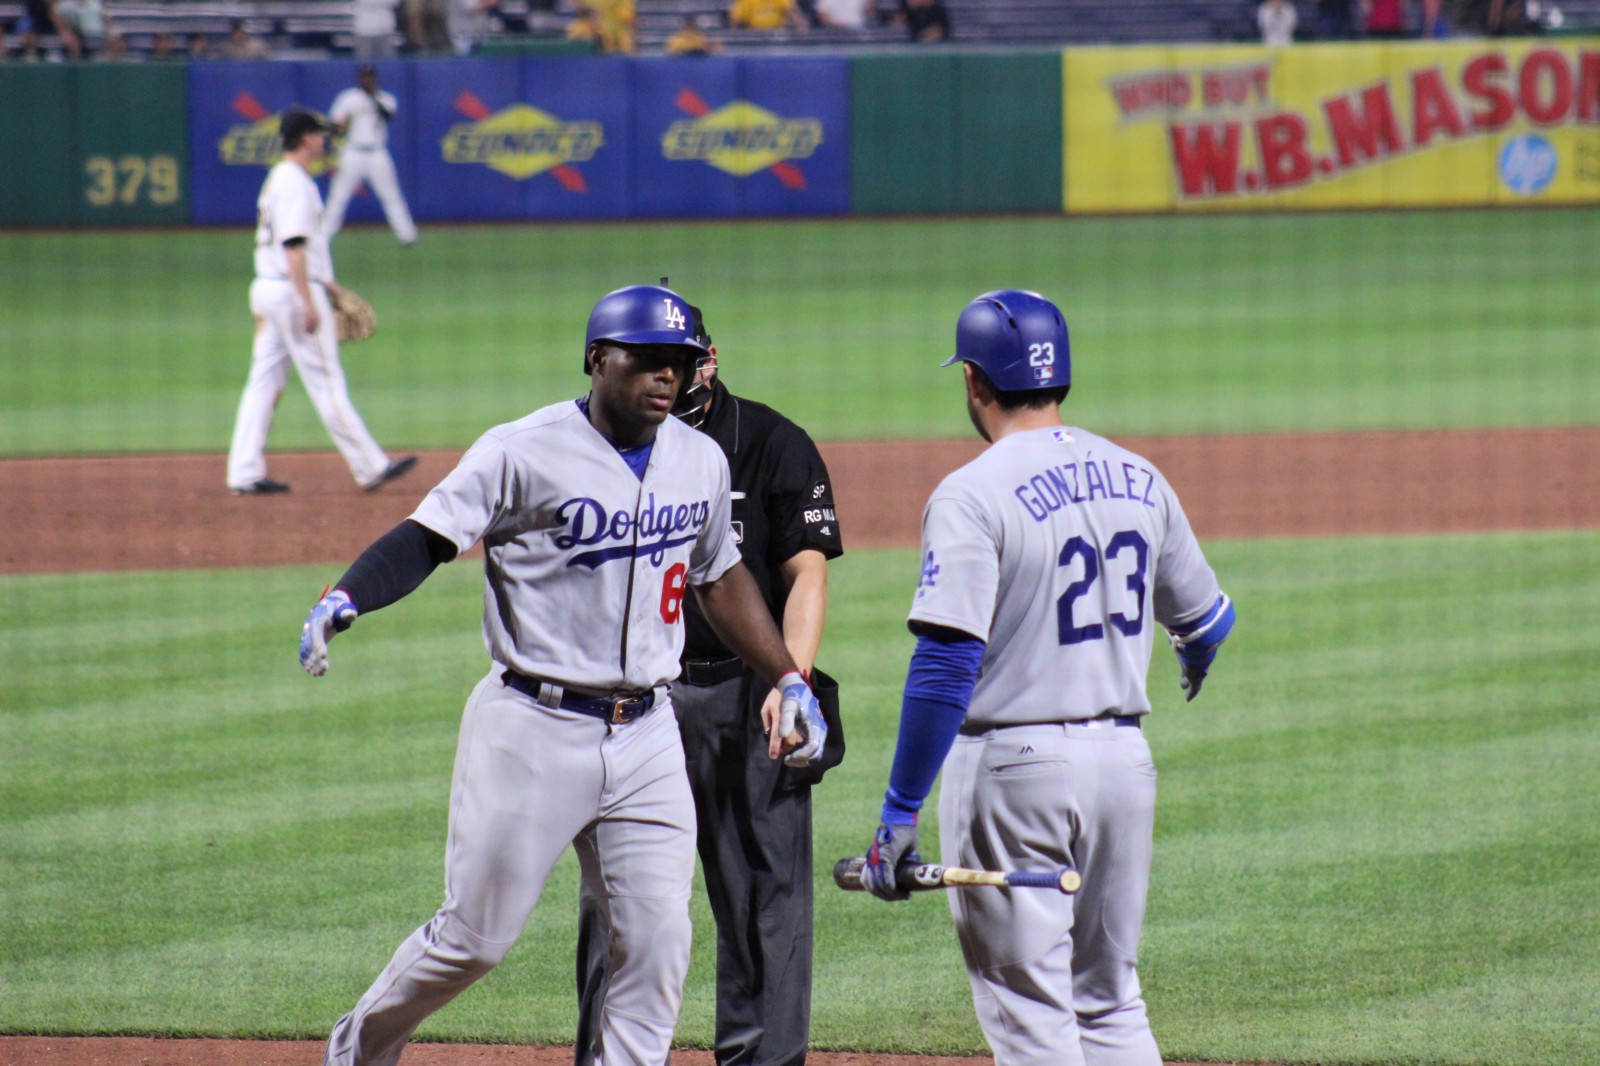 Puig homers to lead Dodgers over Pirates in 12